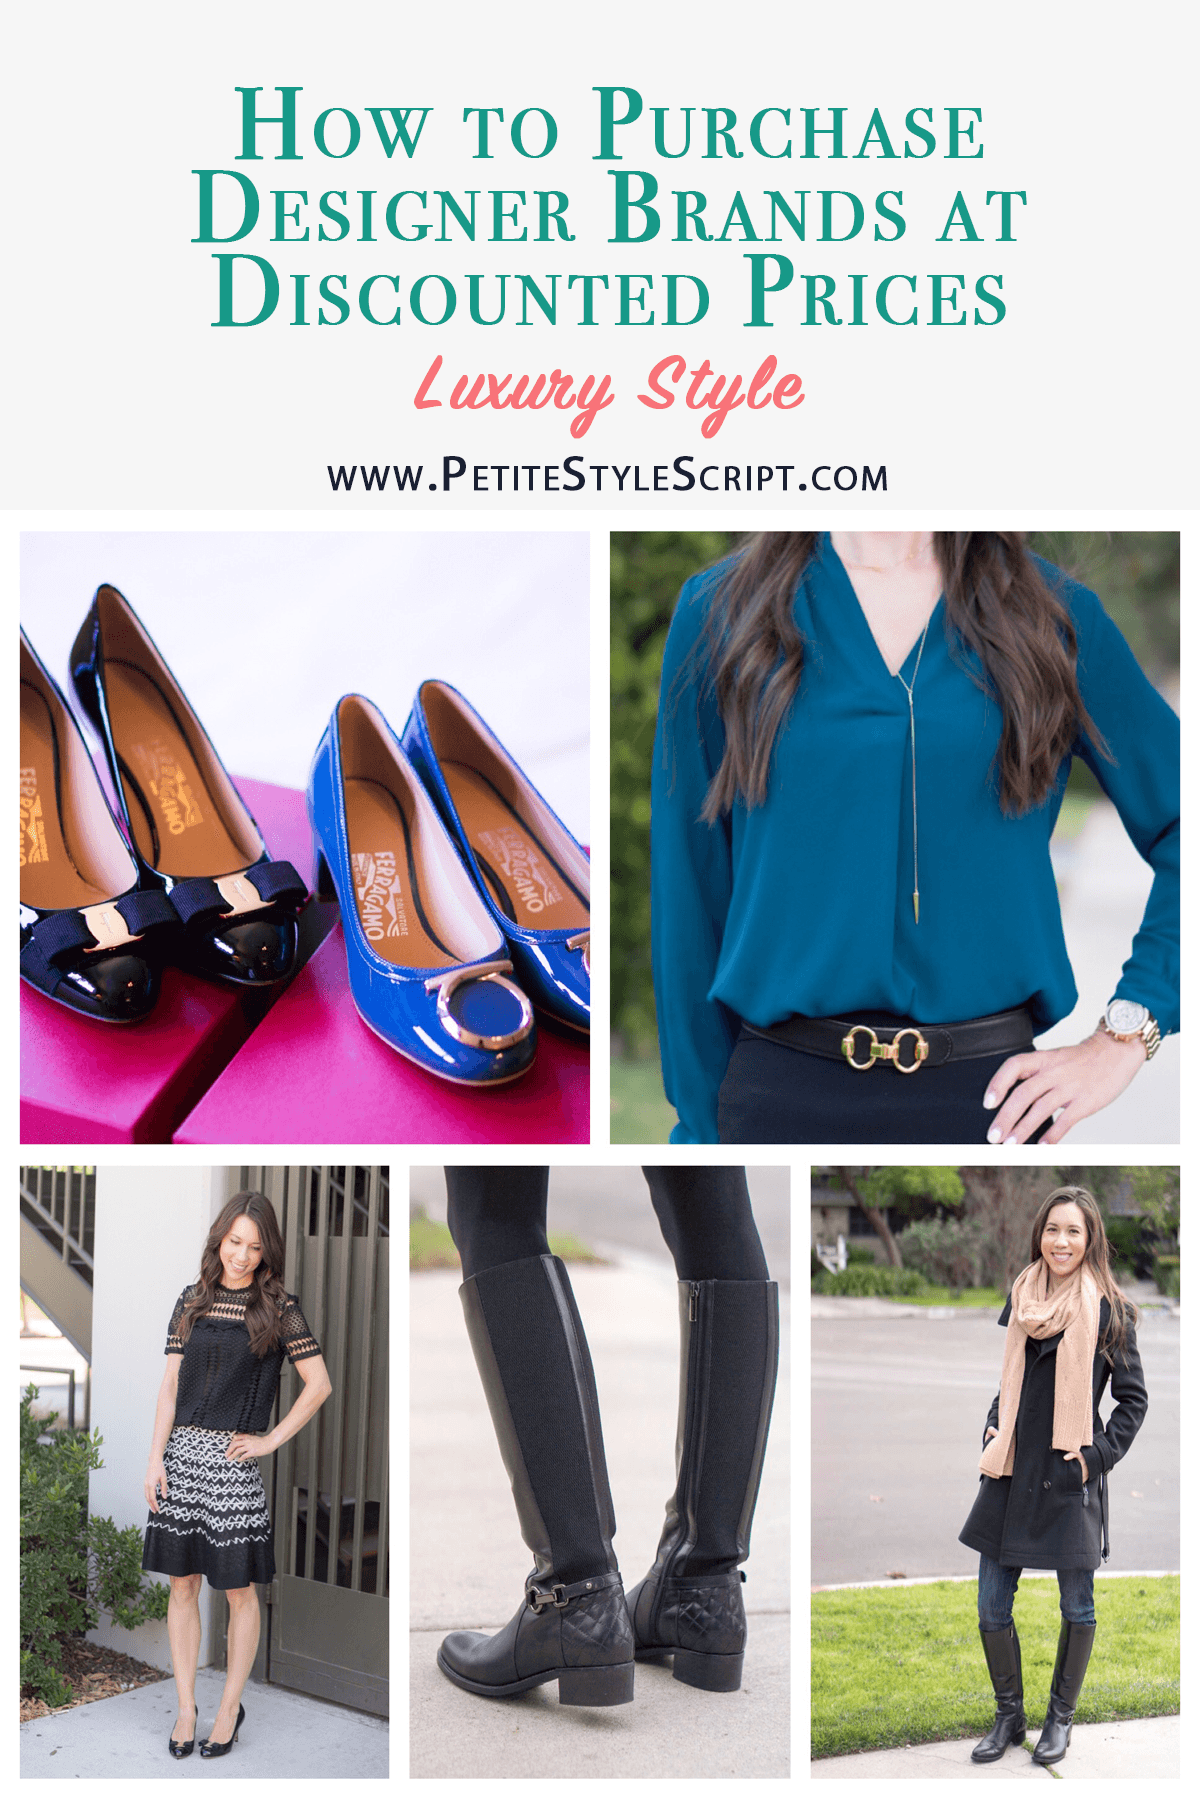 Designer Clothing At Discount Prices | How To Purchase Designer Brands At Discounted Prices Petite Style